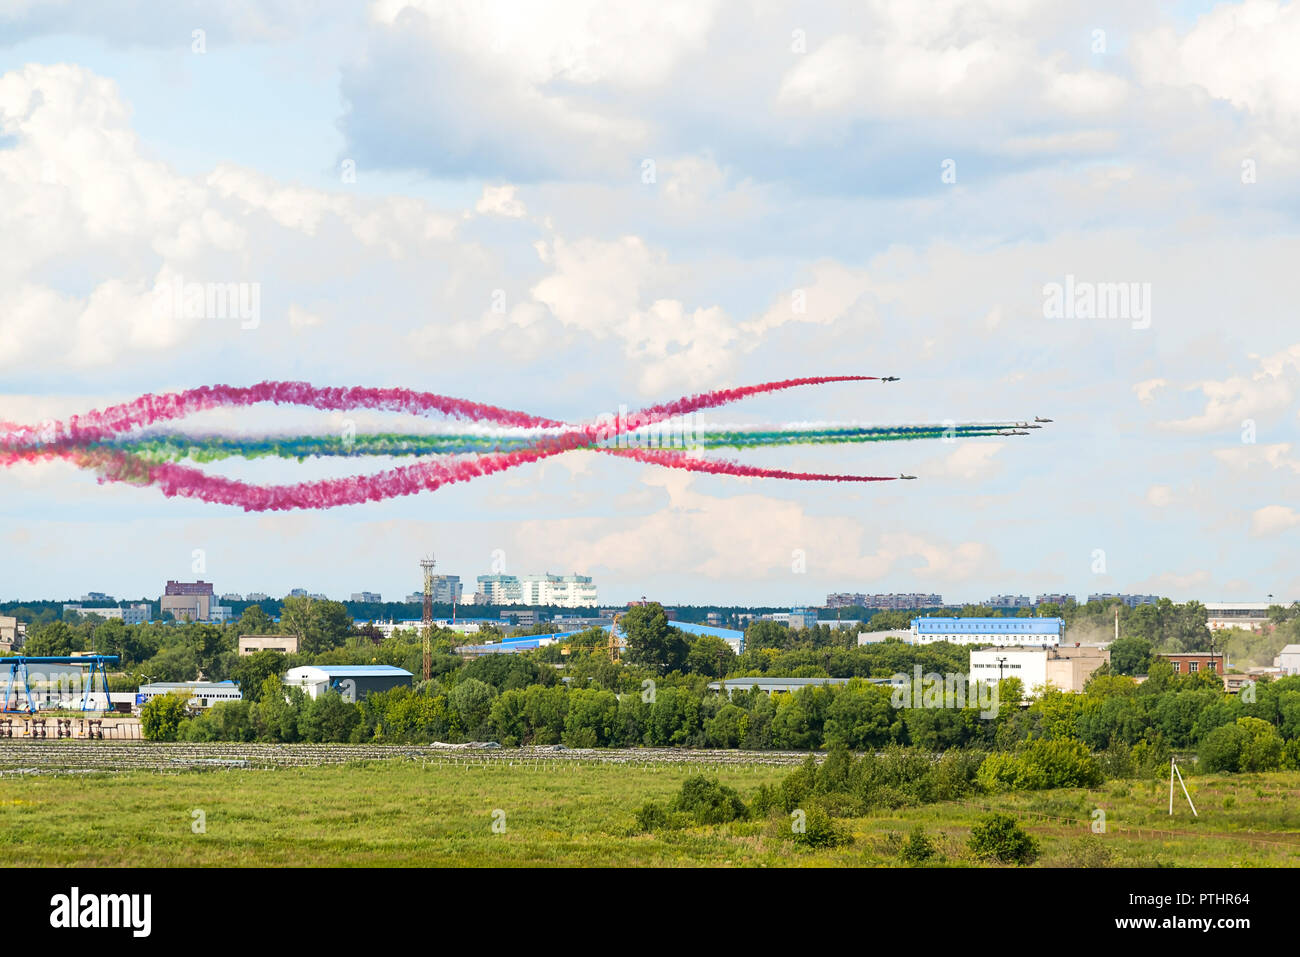 Russia, Zhukovsky, July 23, 2017: International Aviation and Space Salon MAKS-2017, fighter flights. Annual event, scientific conferences, business - Stock Image